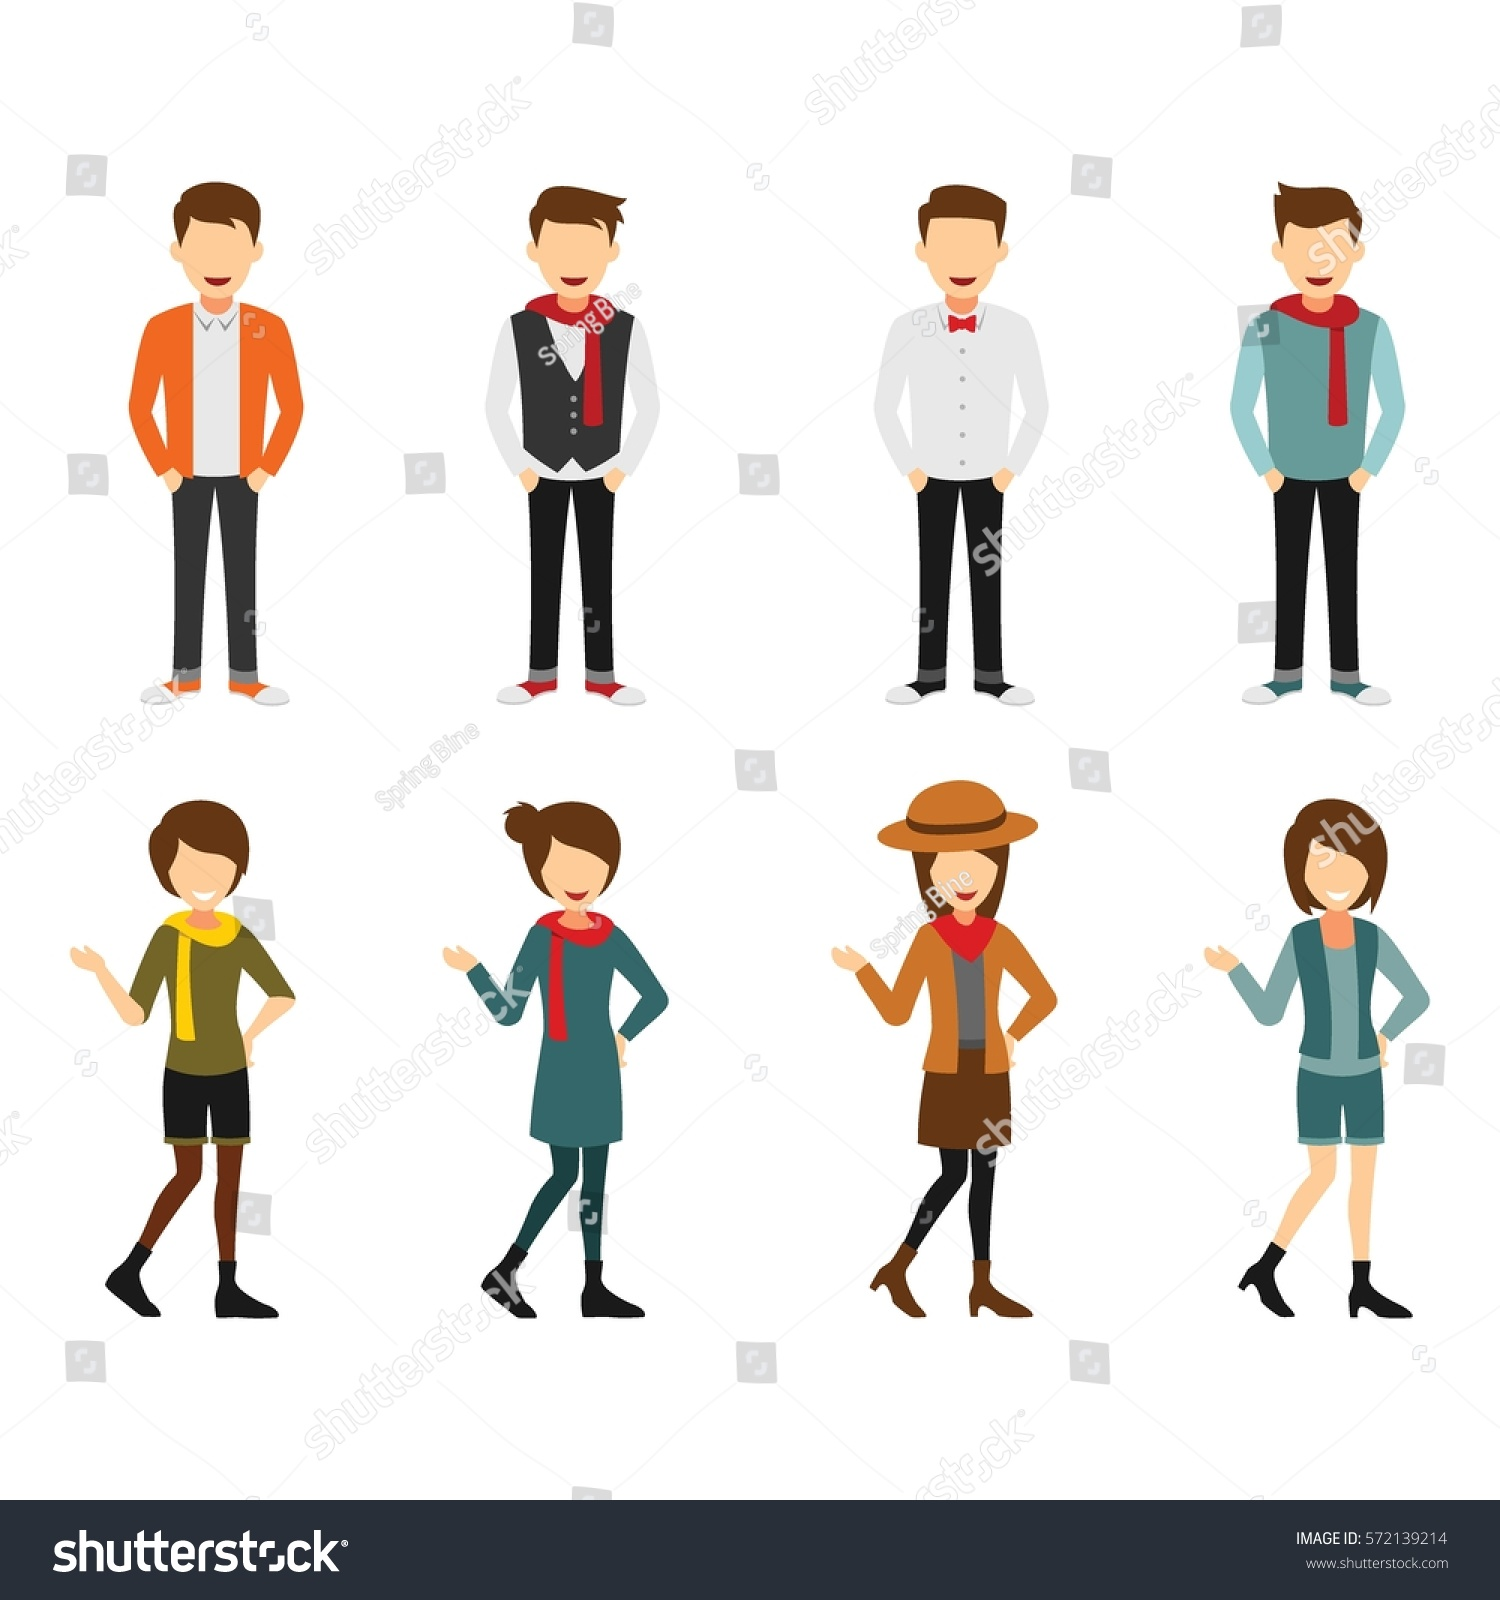 Character Design Vector : Hipster character design vector stock